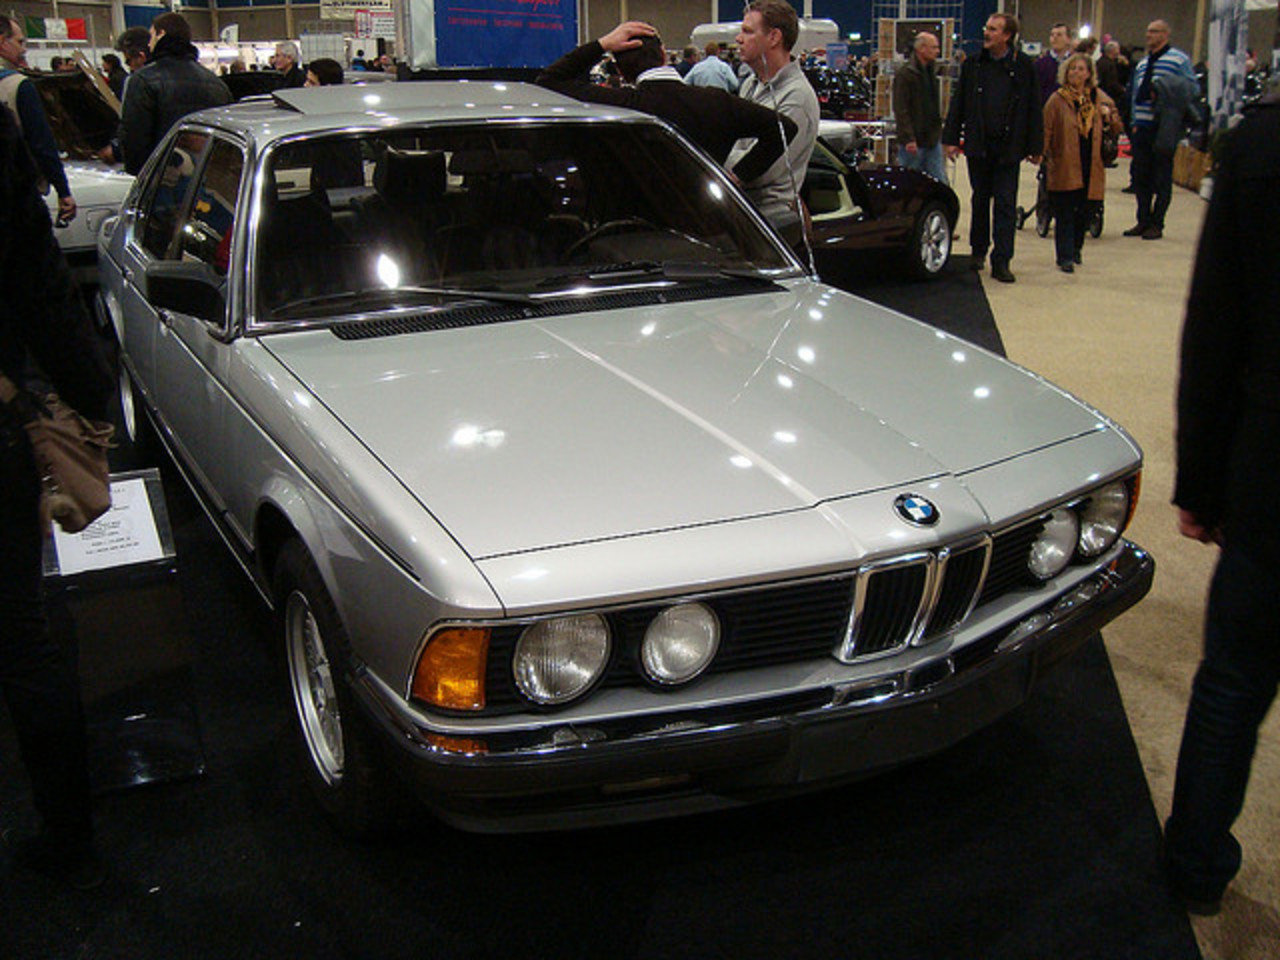 1984 BMW 732i | Flickr - Photo Sharing!